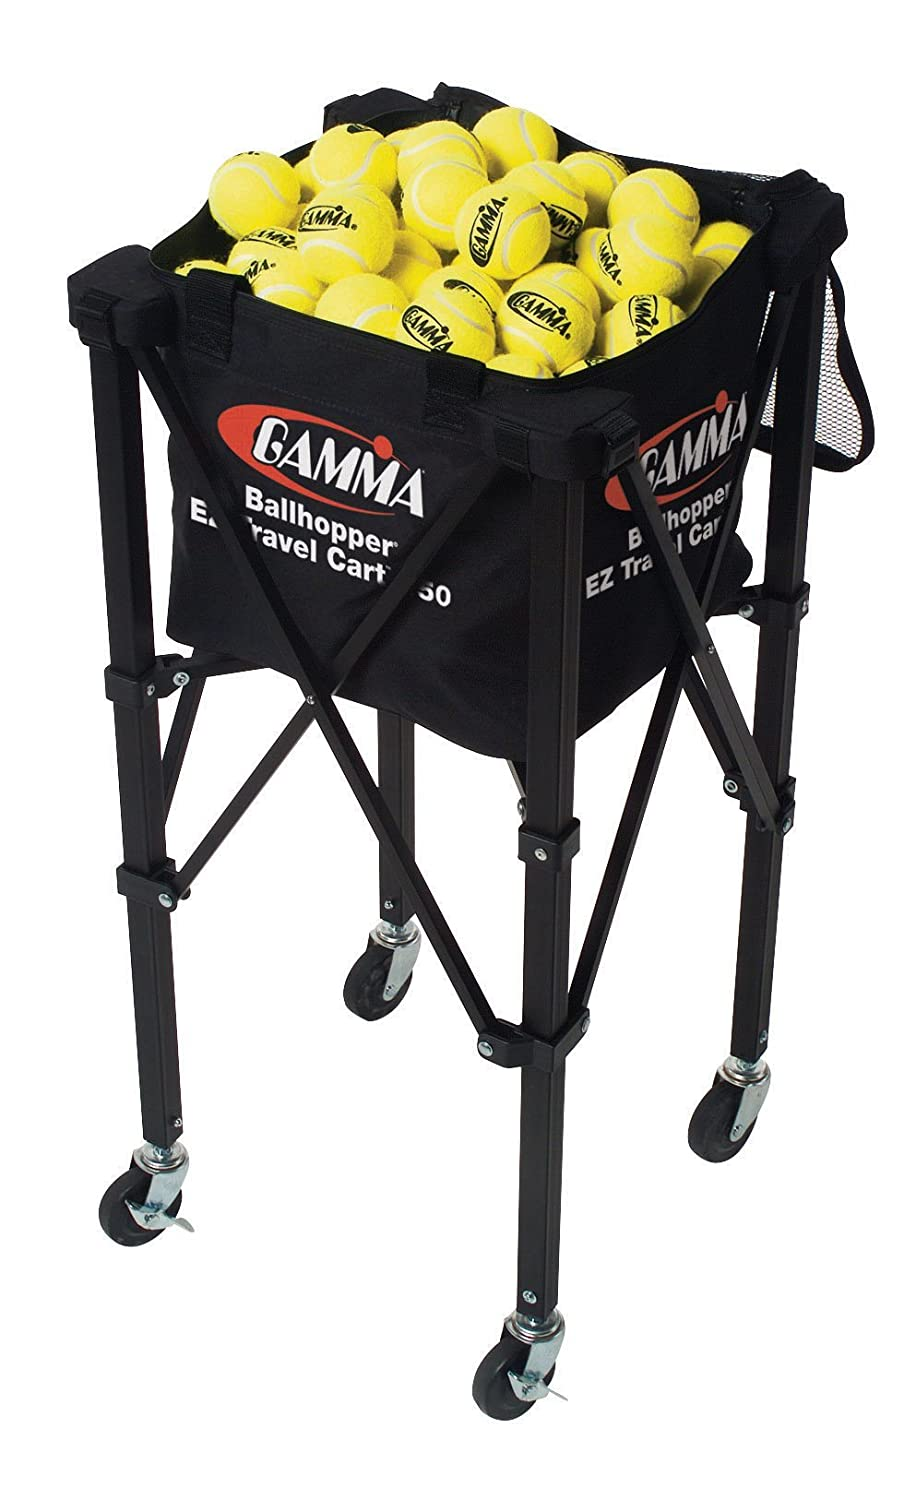 Gamma Sports Premium Tennis Teaching and Travel Baskets